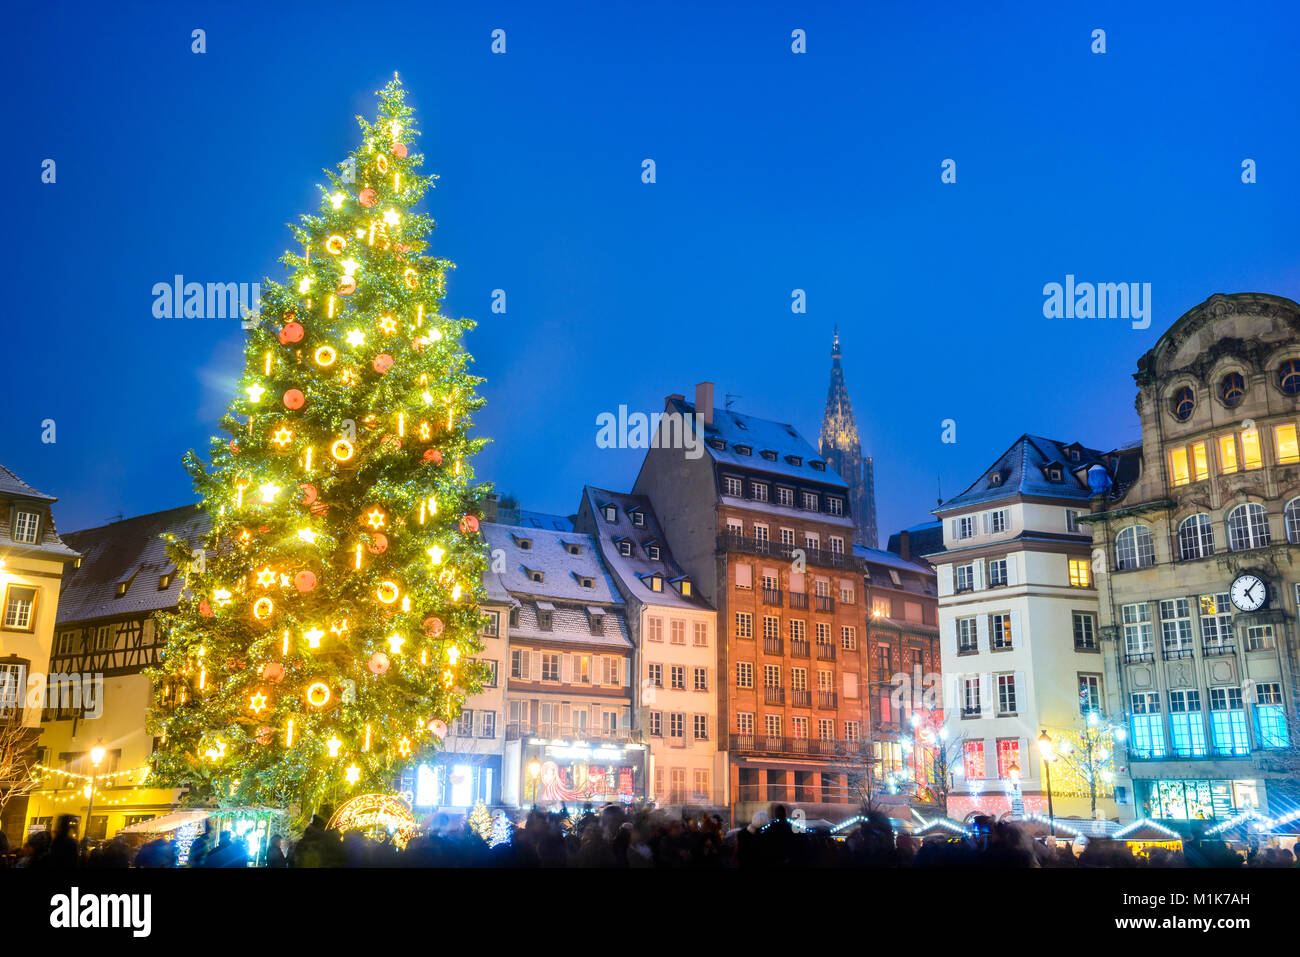 Strasbourg, France. Place Kebler and Christmas Tree, Capitale de Noel in Alsace. - Stock Image